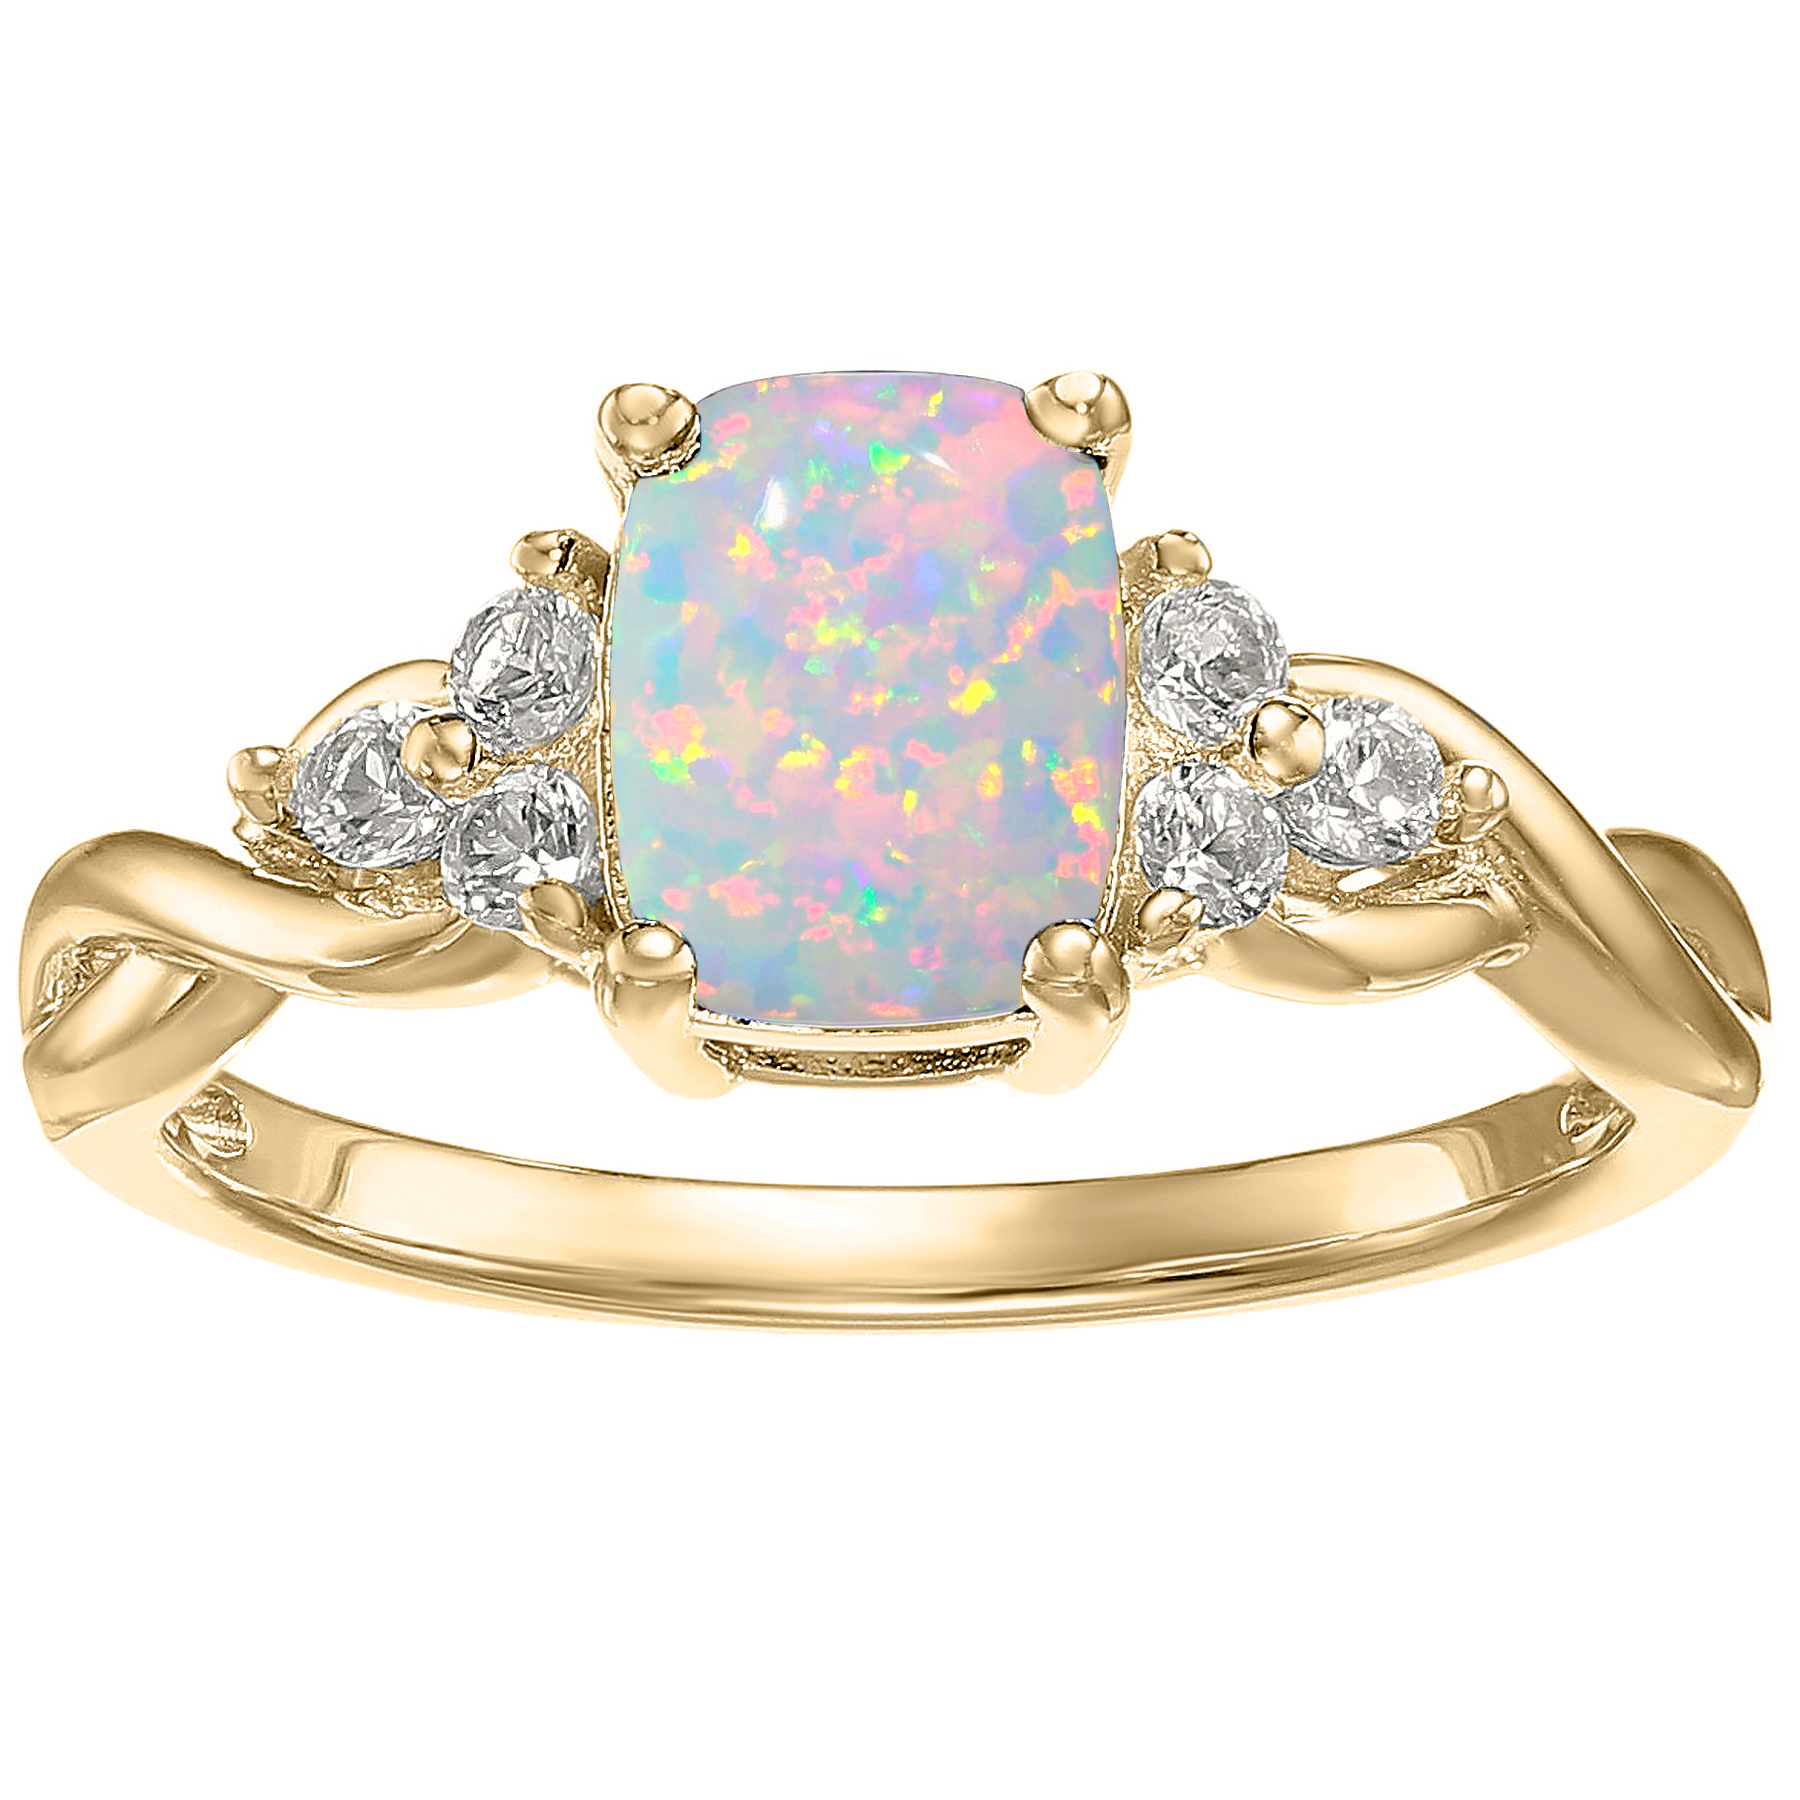 10K Yellow Gold, Simulated White Opal and White Topaz Cushion Ring by Metro Jewelry